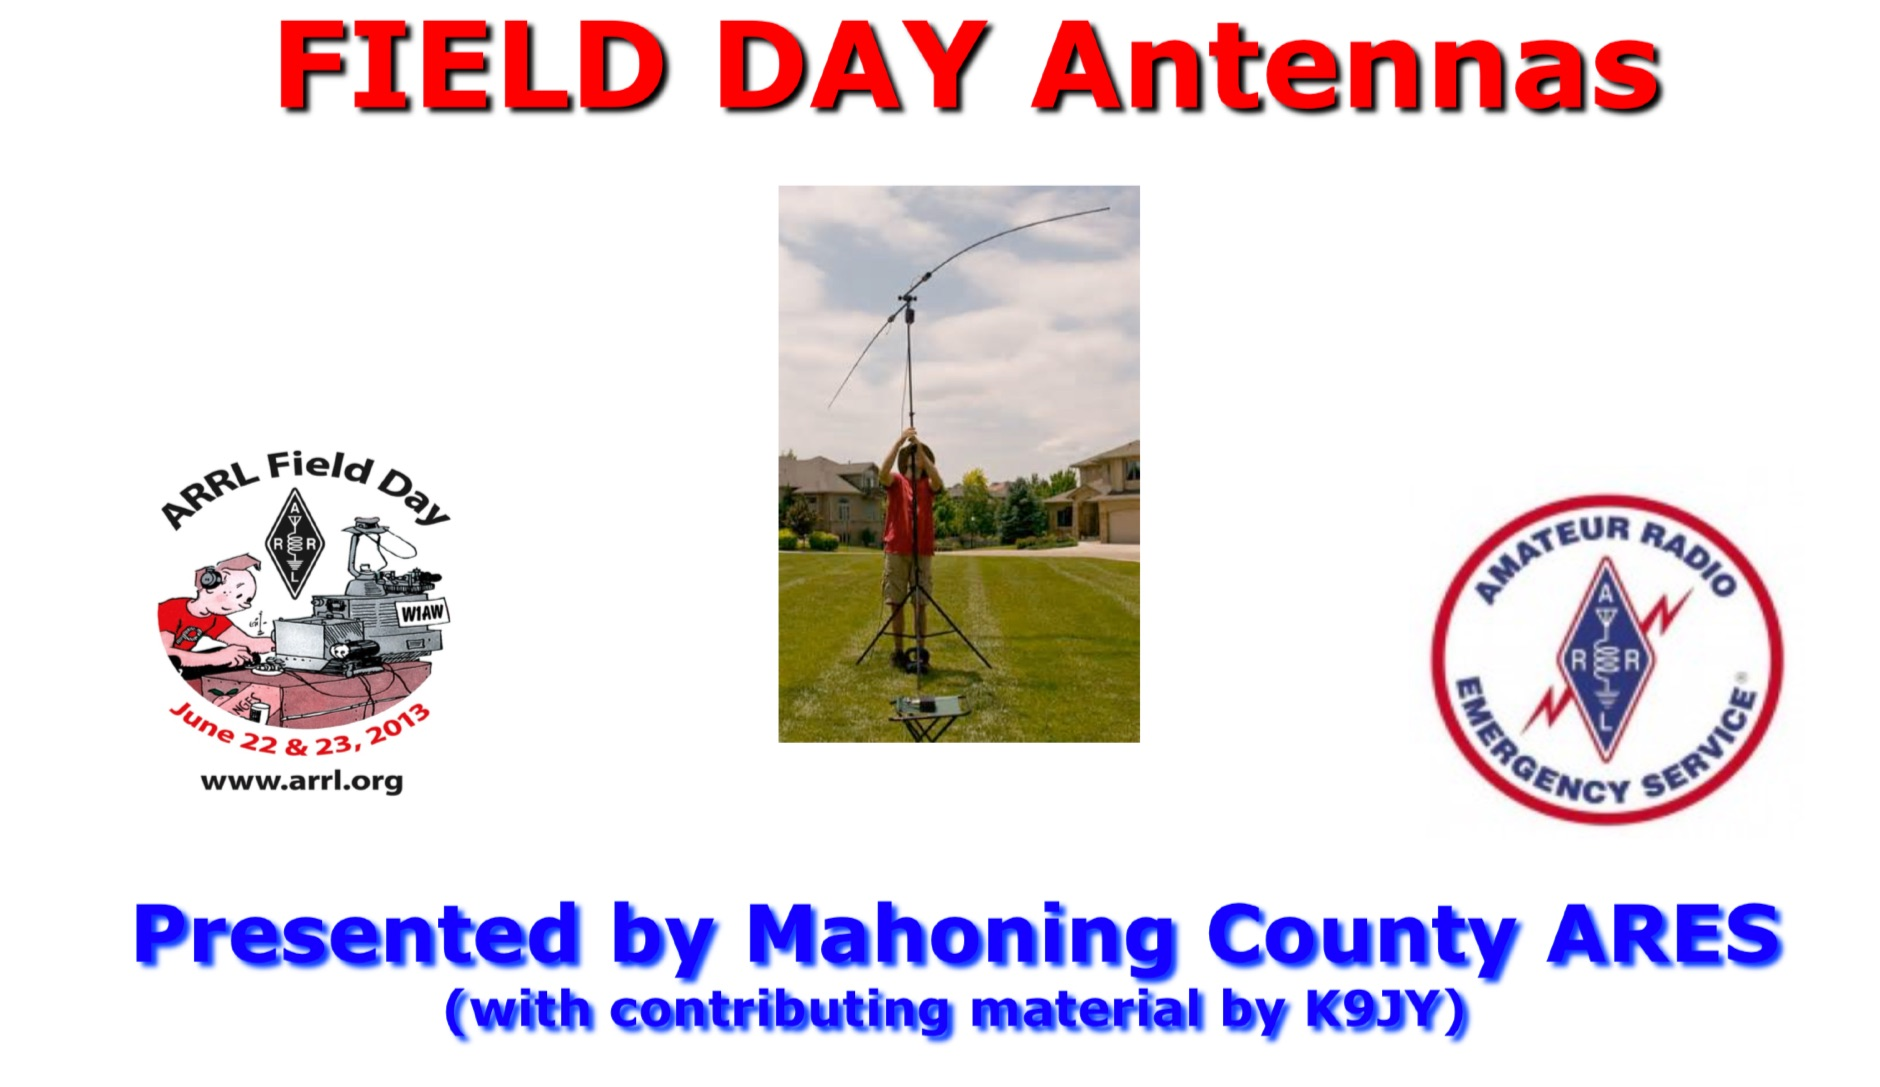 Field Day Antennas